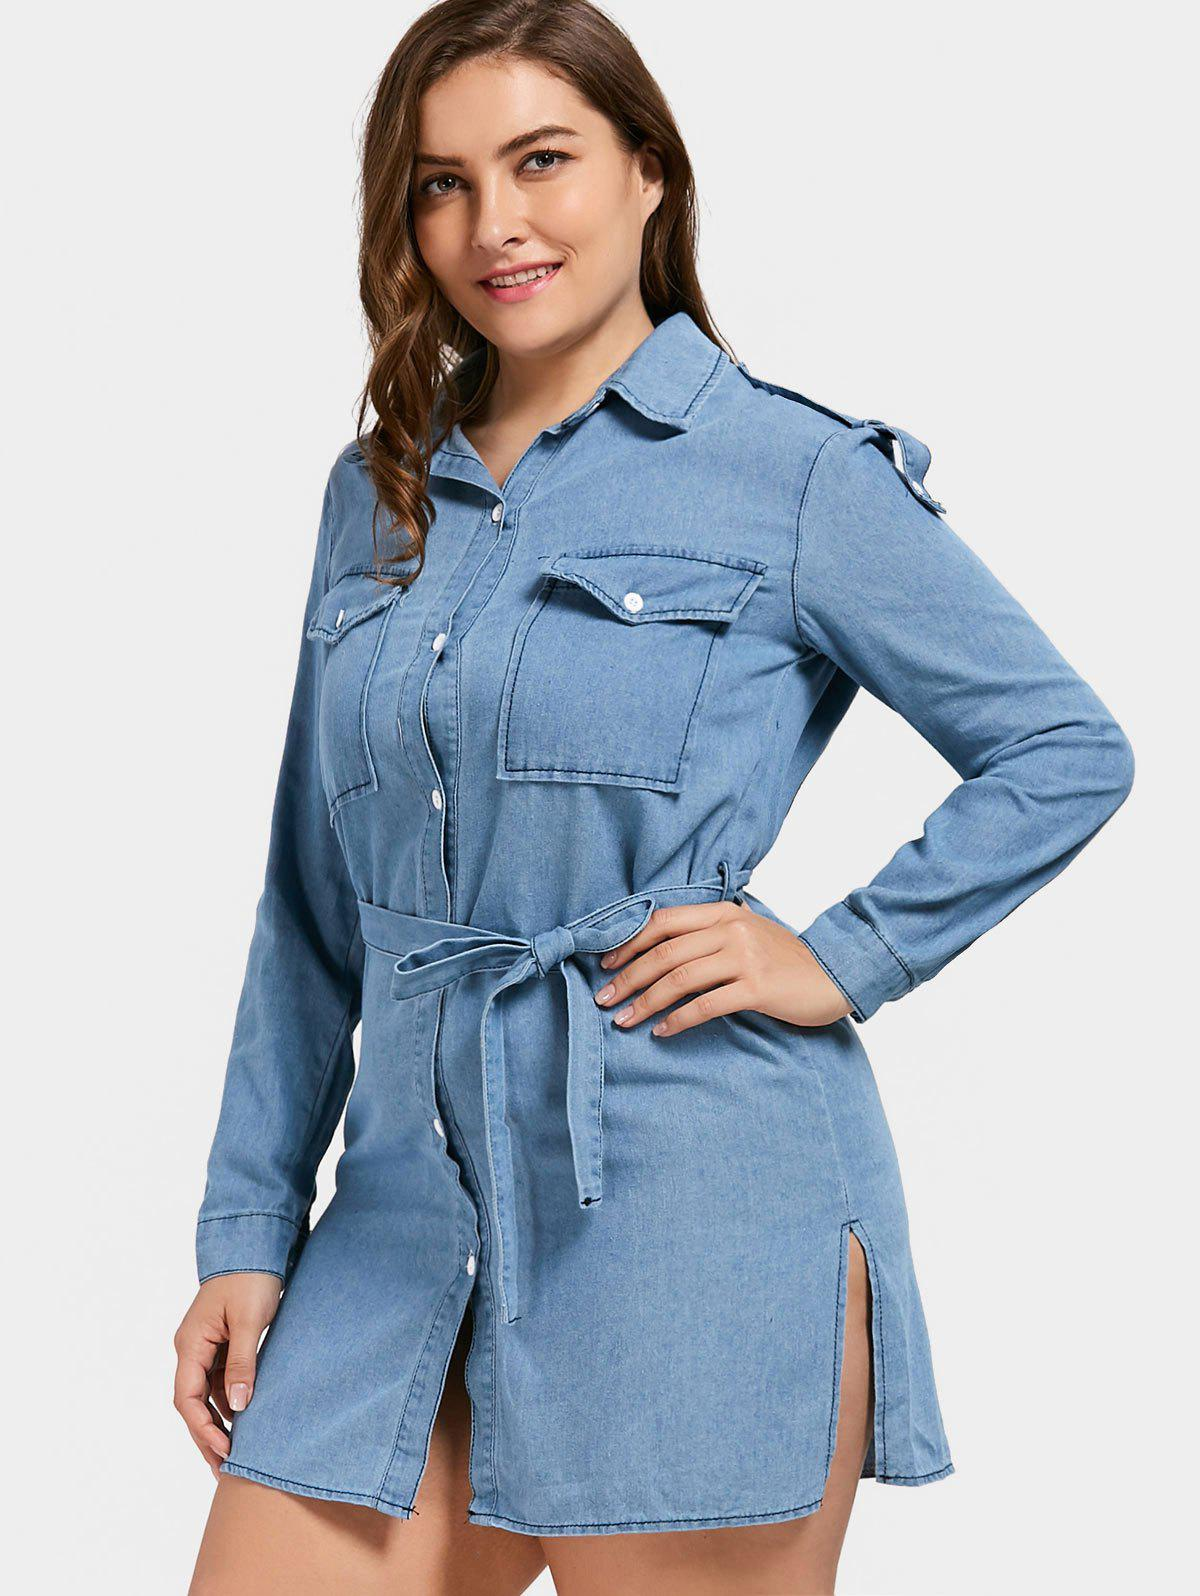 Plus Size Slit Short Jeans Long Sleeve Denim Shirt DressWOMEN<br><br>Size: 5XL; Color: BLUE; Style: Casual; Material: Cotton,Polyester; Silhouette: Straight; Dresses Length: Mini; Neckline: Shirt Collar; Sleeve Length: Long Sleeves; Pattern Type: Solid; With Belt: Yes; Season: Fall; Weight: 0.4900kg; Package Contents: 1 x Dress  1 x Belt;